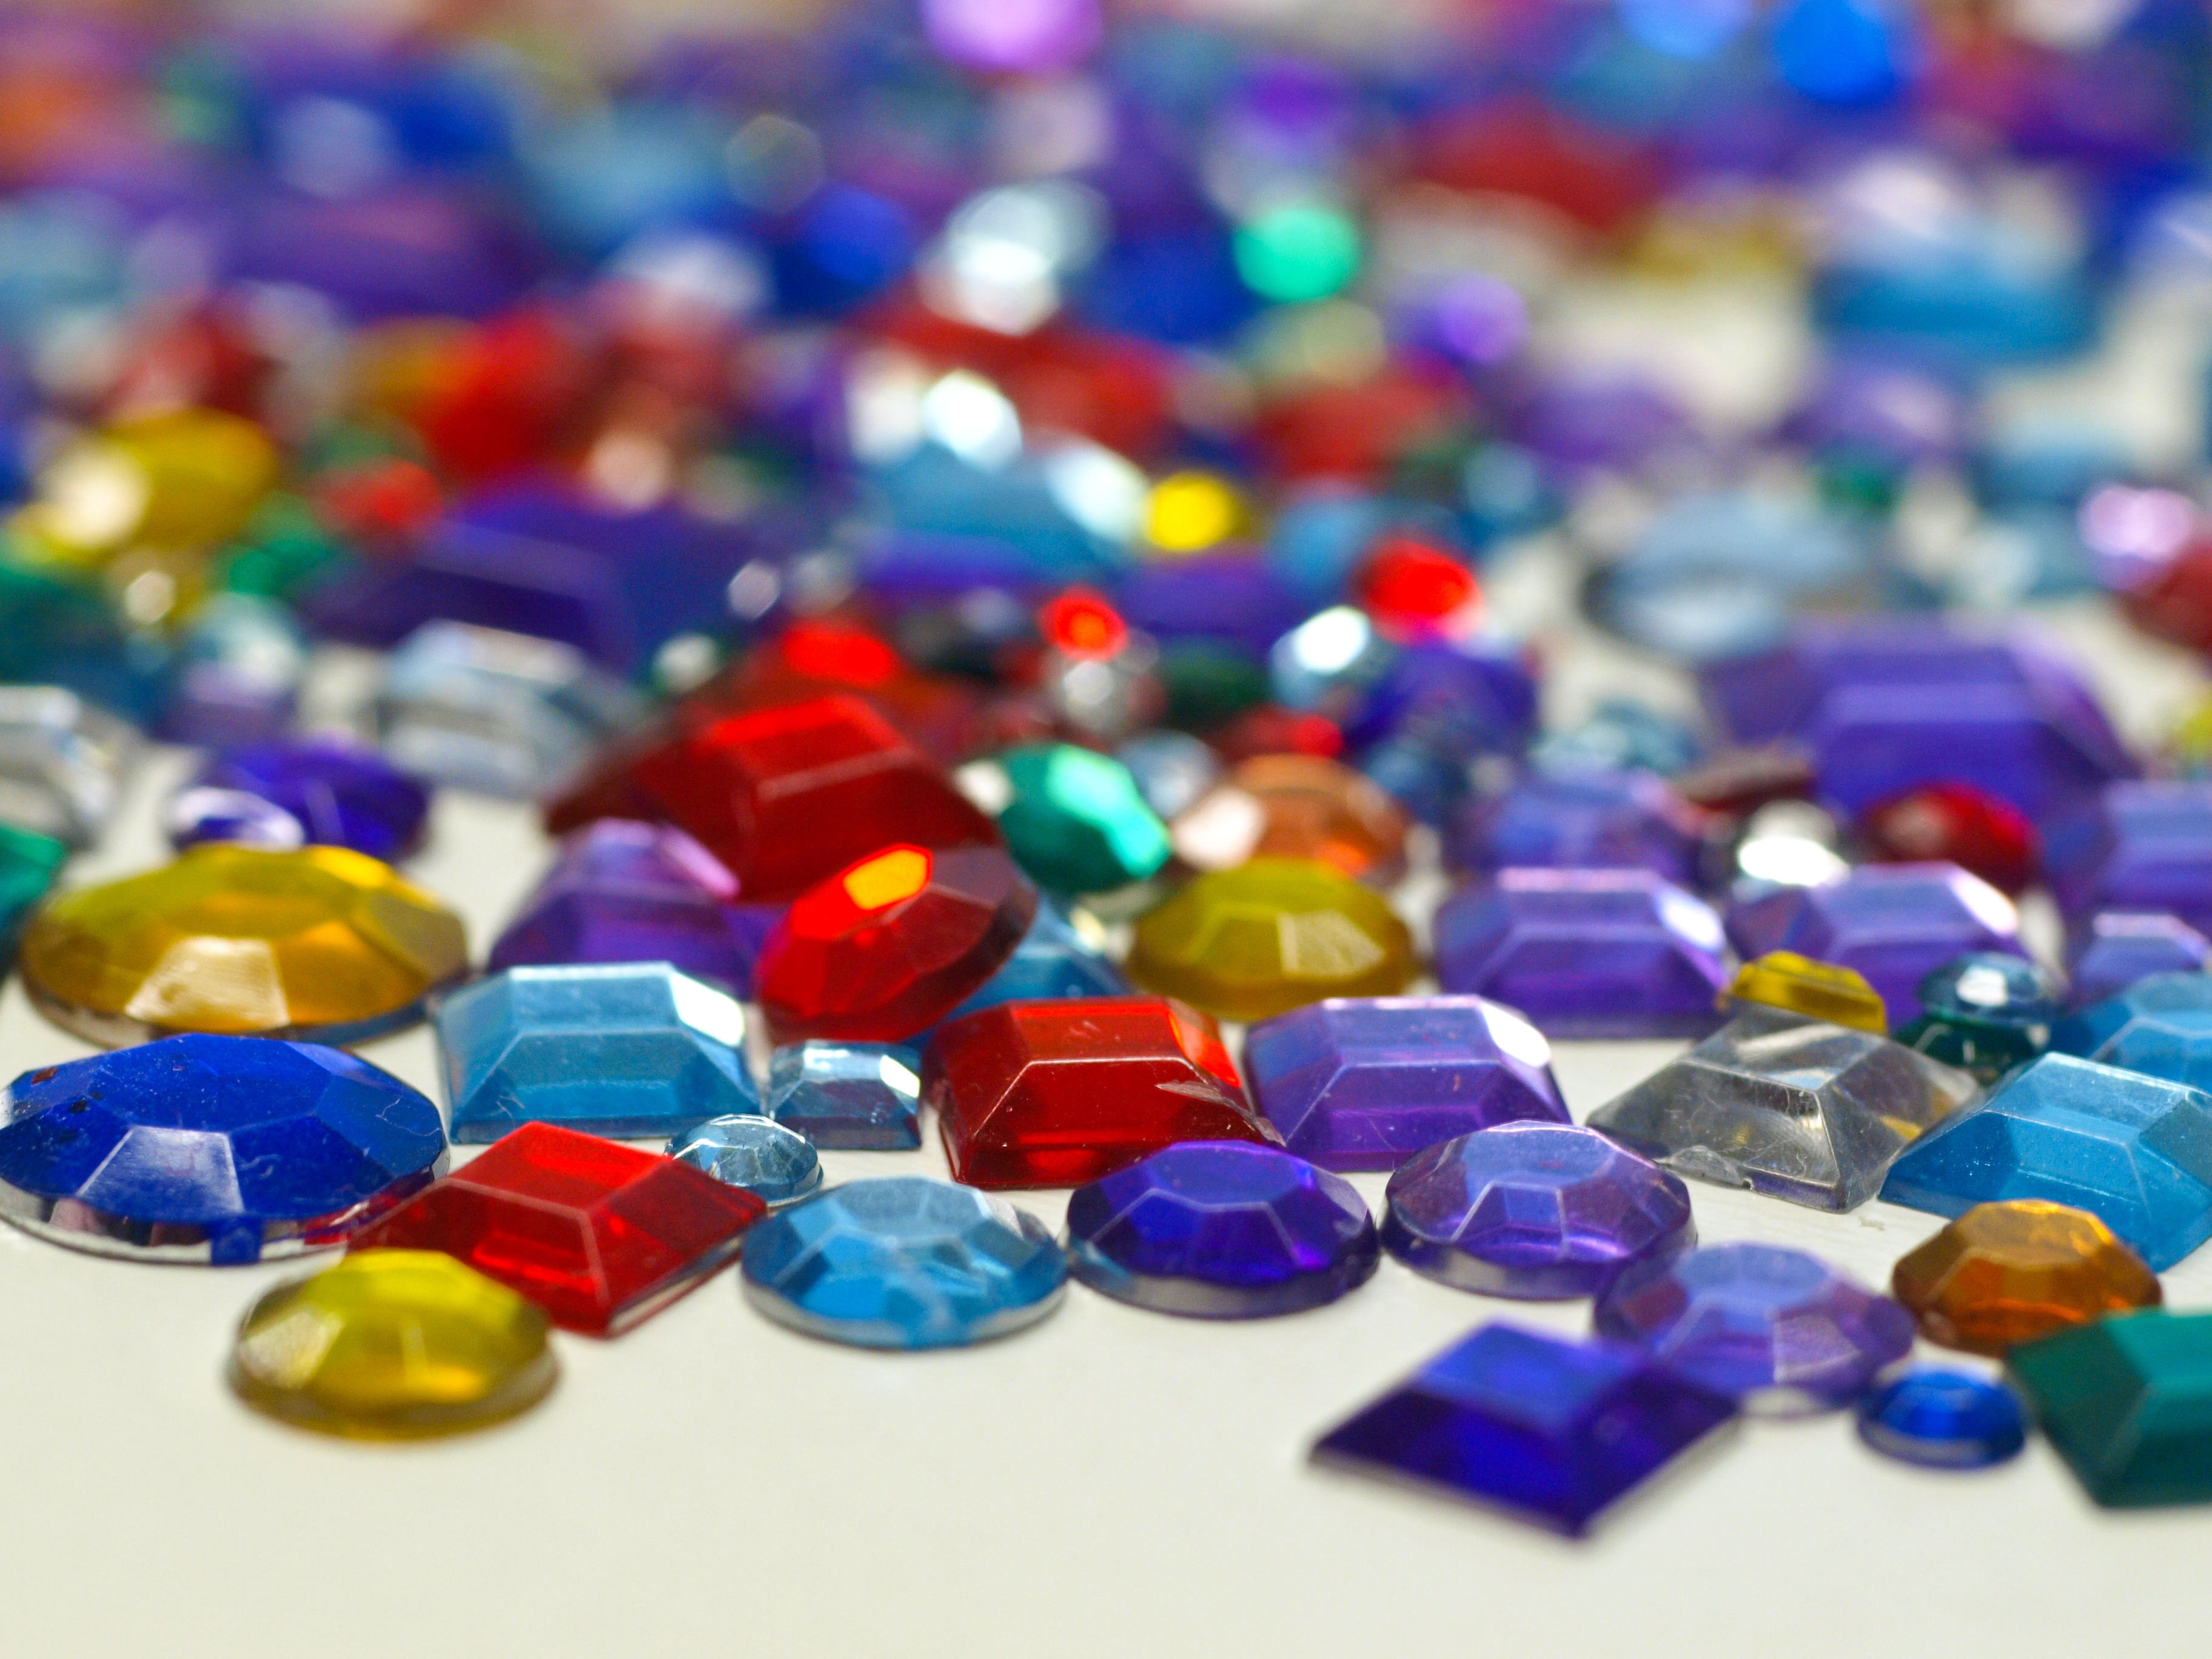 A colorful assortment of artificial plastic je...